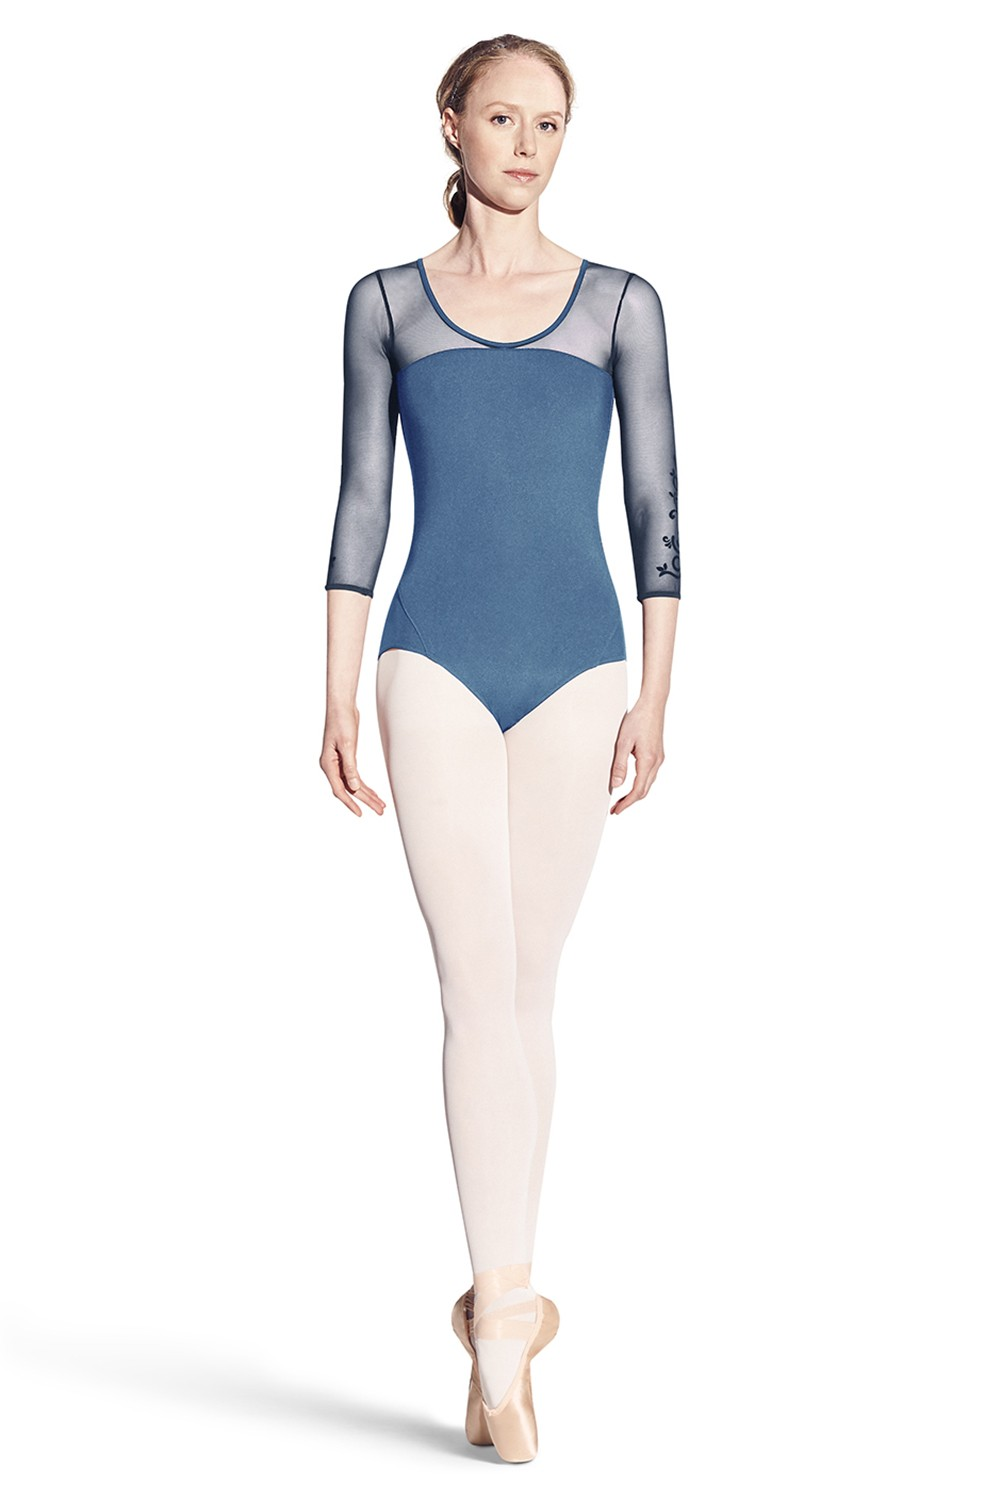 Darroll Women's Dance Leotards